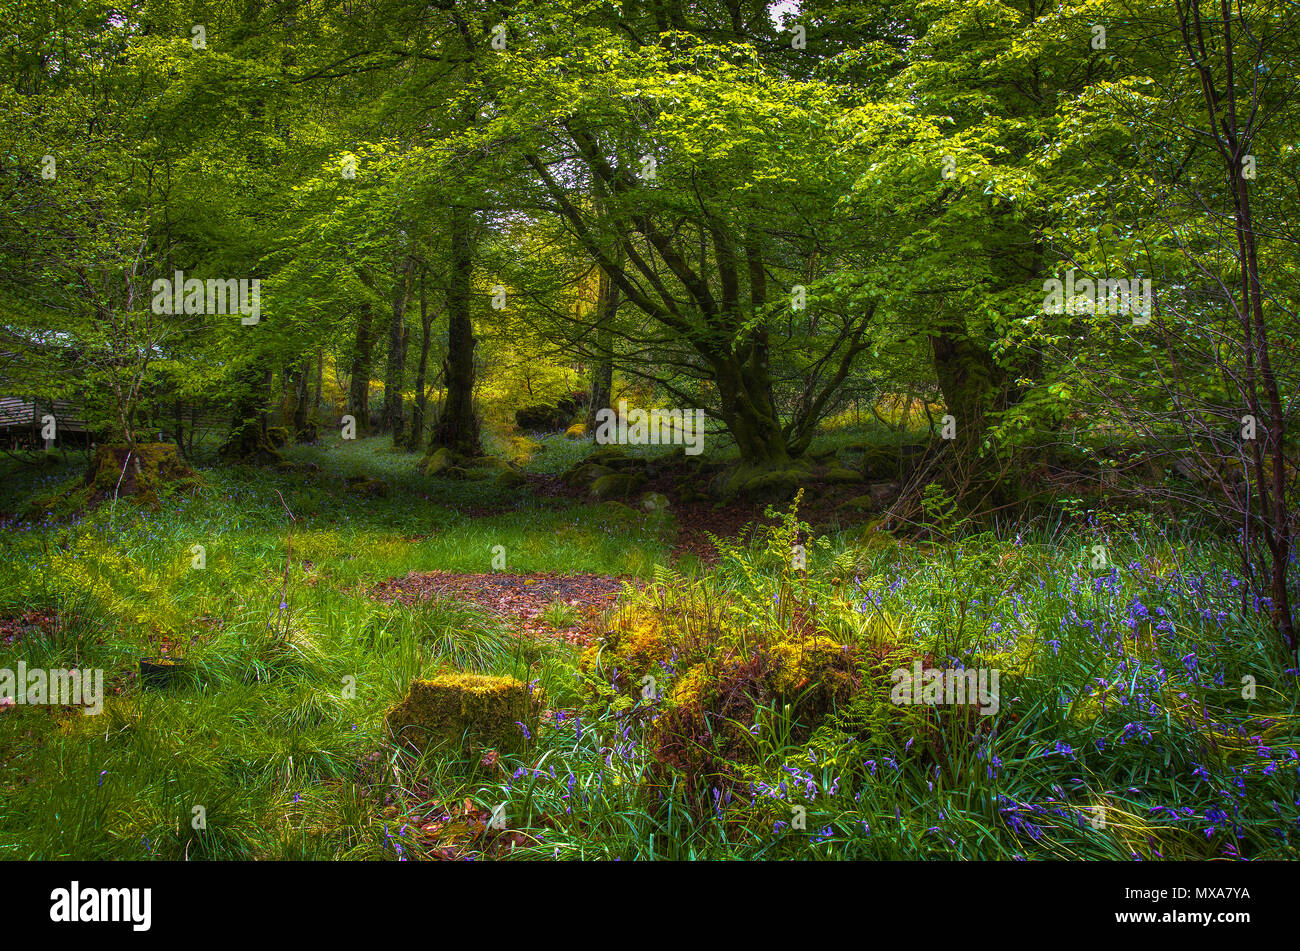 Enchanting Fairy Glen in Scotland sun setting on the opening in the forest. sunlight shining through trees on to meadow. - Stock Image